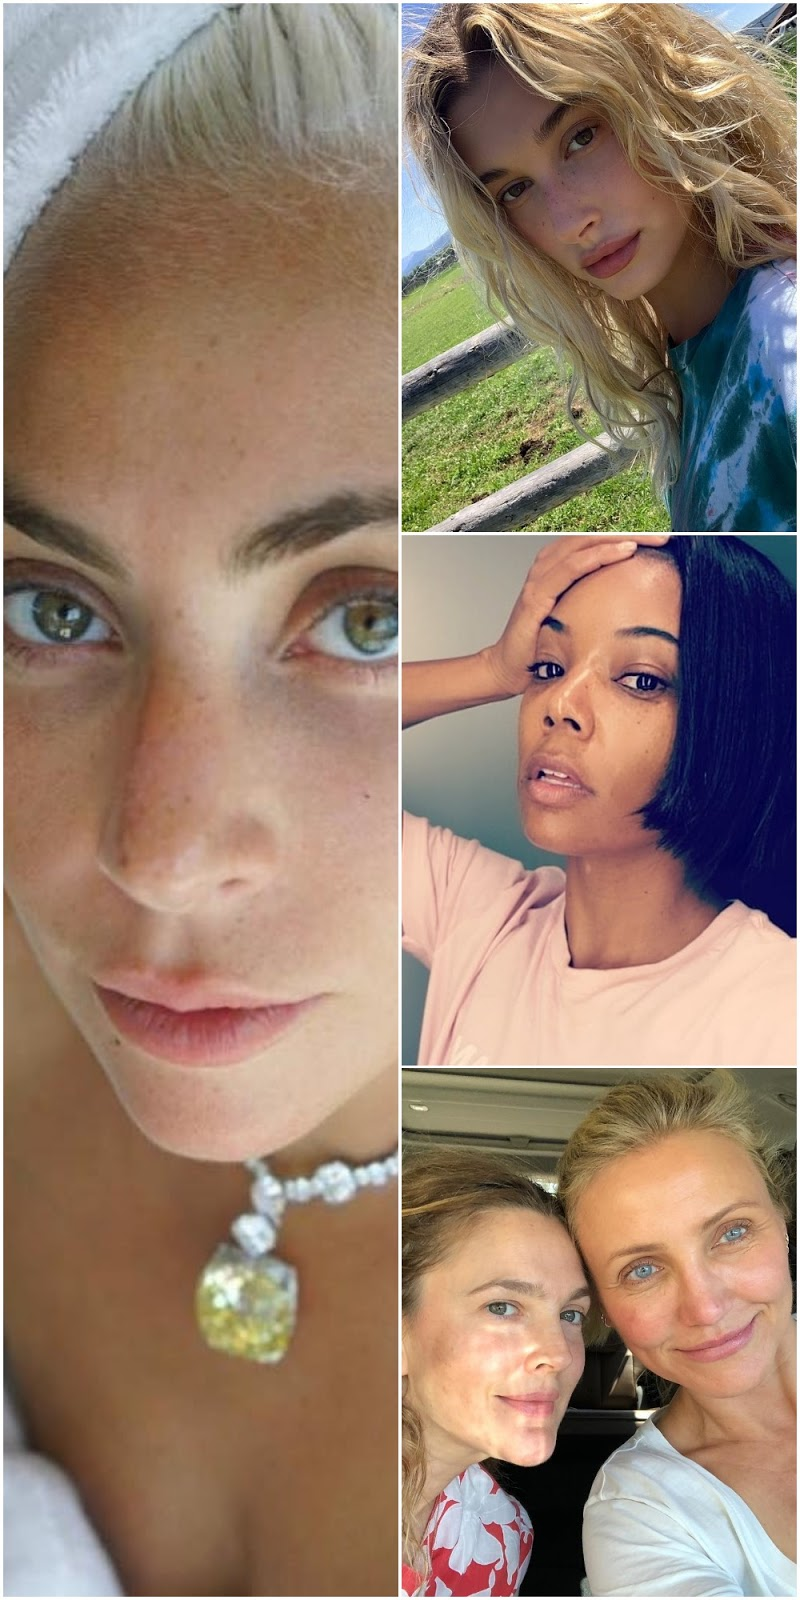 Top 10 Most Stunning Makeup-Free Celebrity Selfies